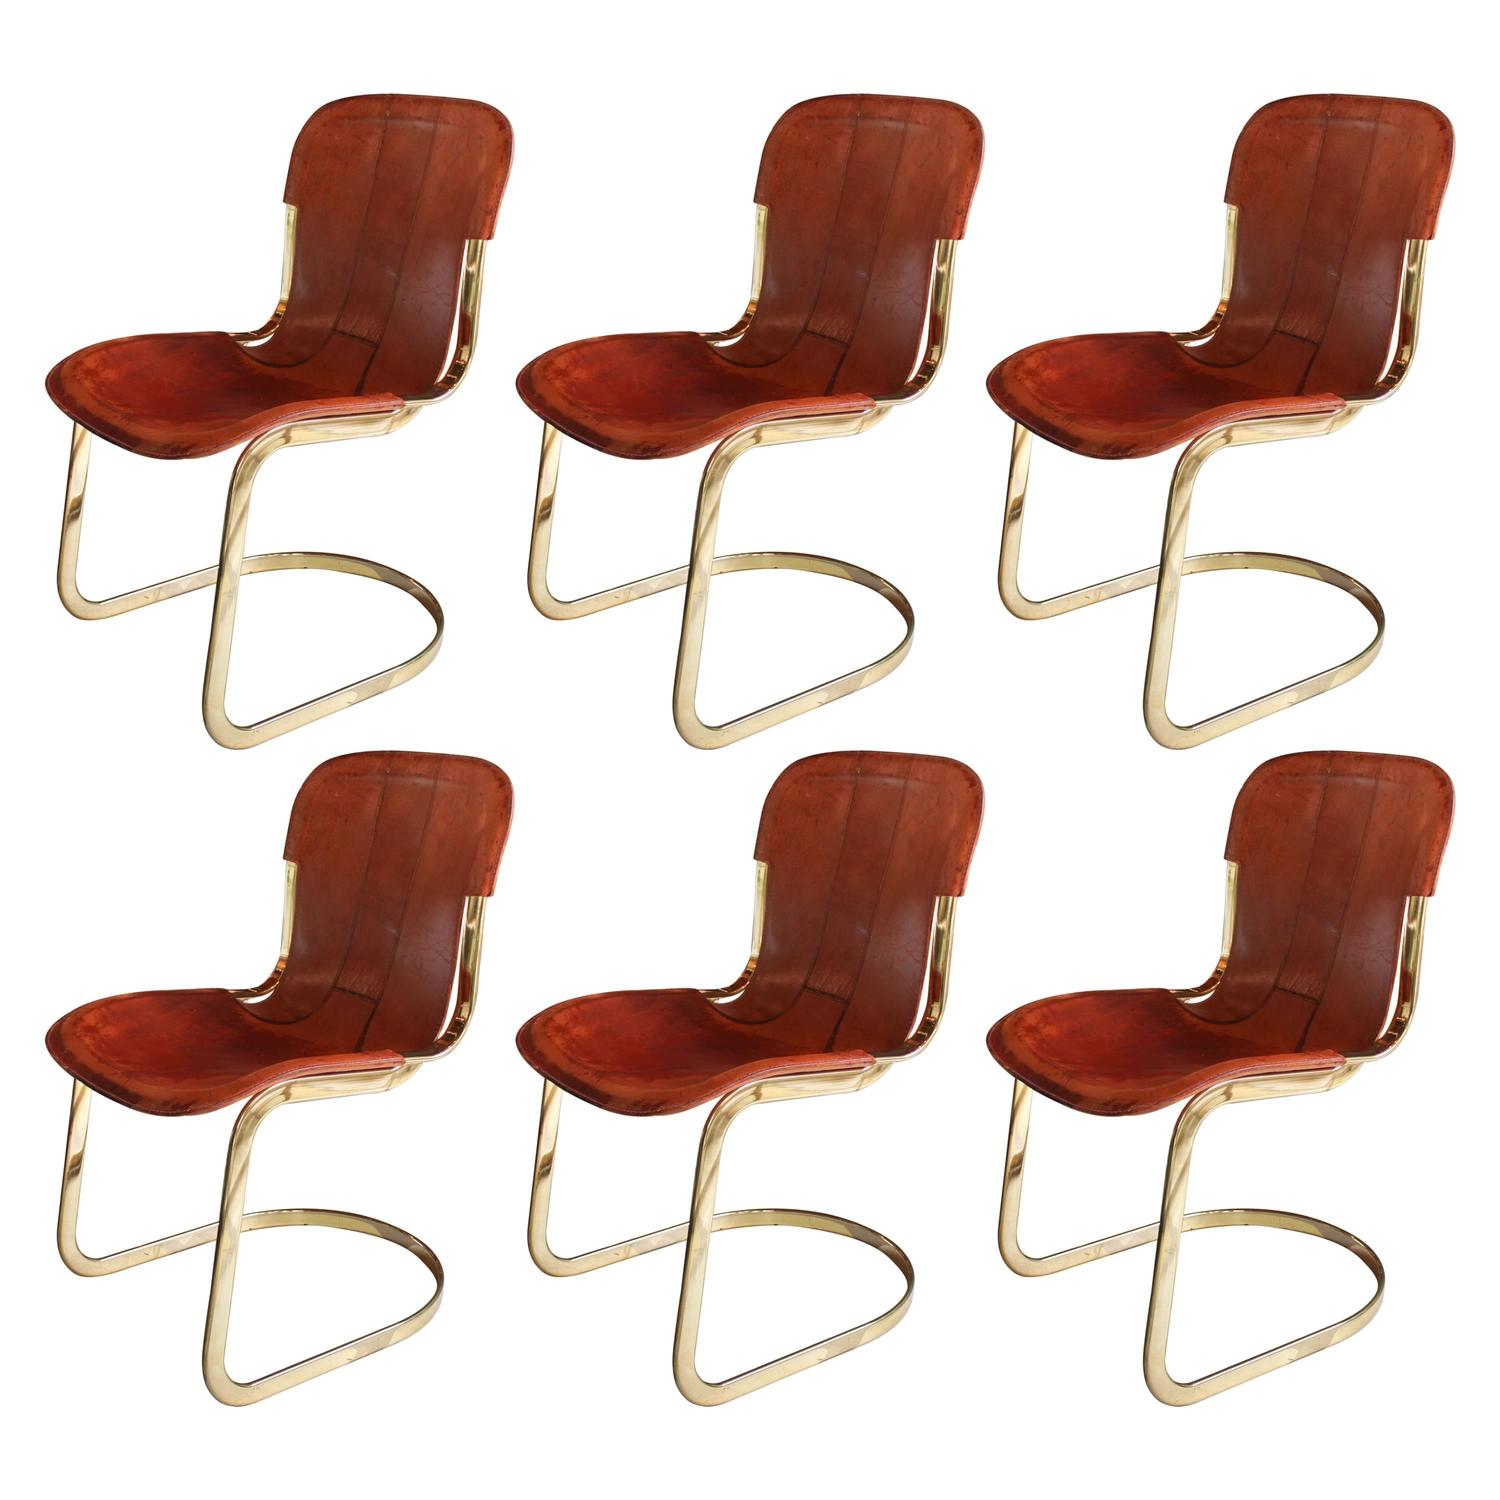 Italian Leather Dining Chairs: Set Of Six Italian Leather Dining Chairs Marked Cidue At